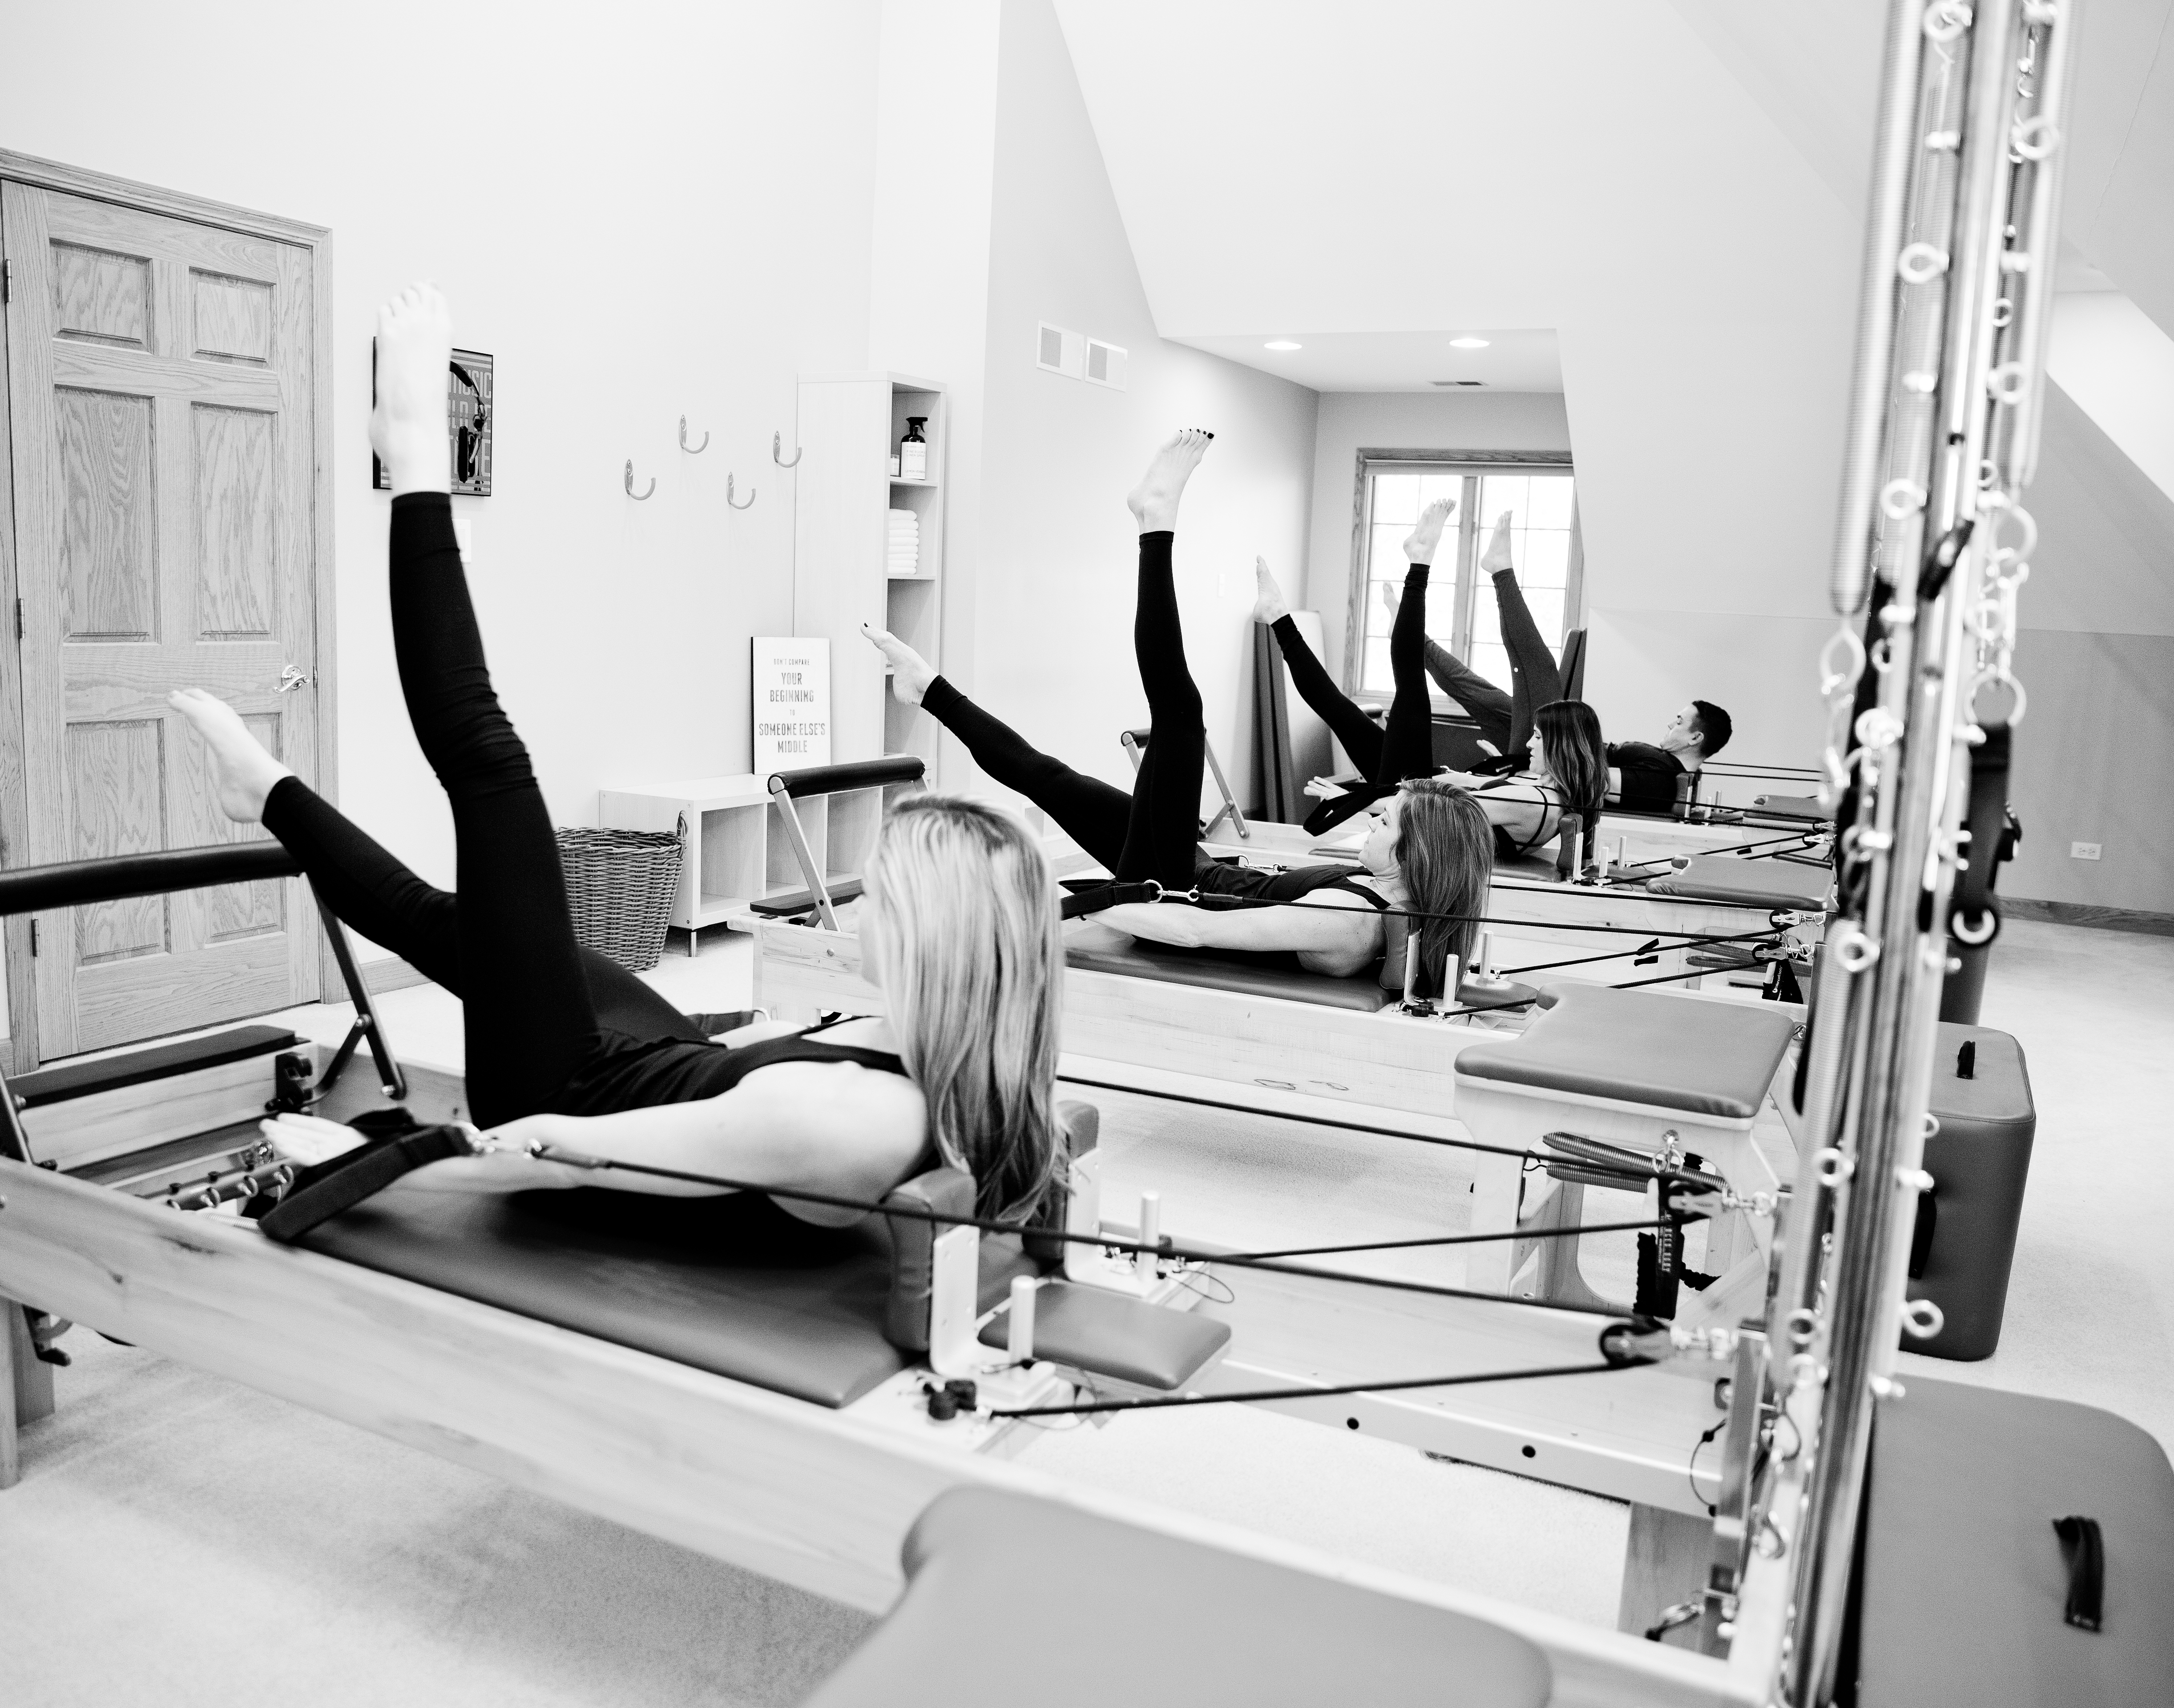 Gallery - k.pilates studio on gallery e, gallery h, gallery j, gallery n, gallery i, gallery l, gallery d, gallery c, gallery v, gallery f, gallery r, gallery t, gallery q, gallery a, gallery g, gallery m, gallery b, gallery s, gallery p,